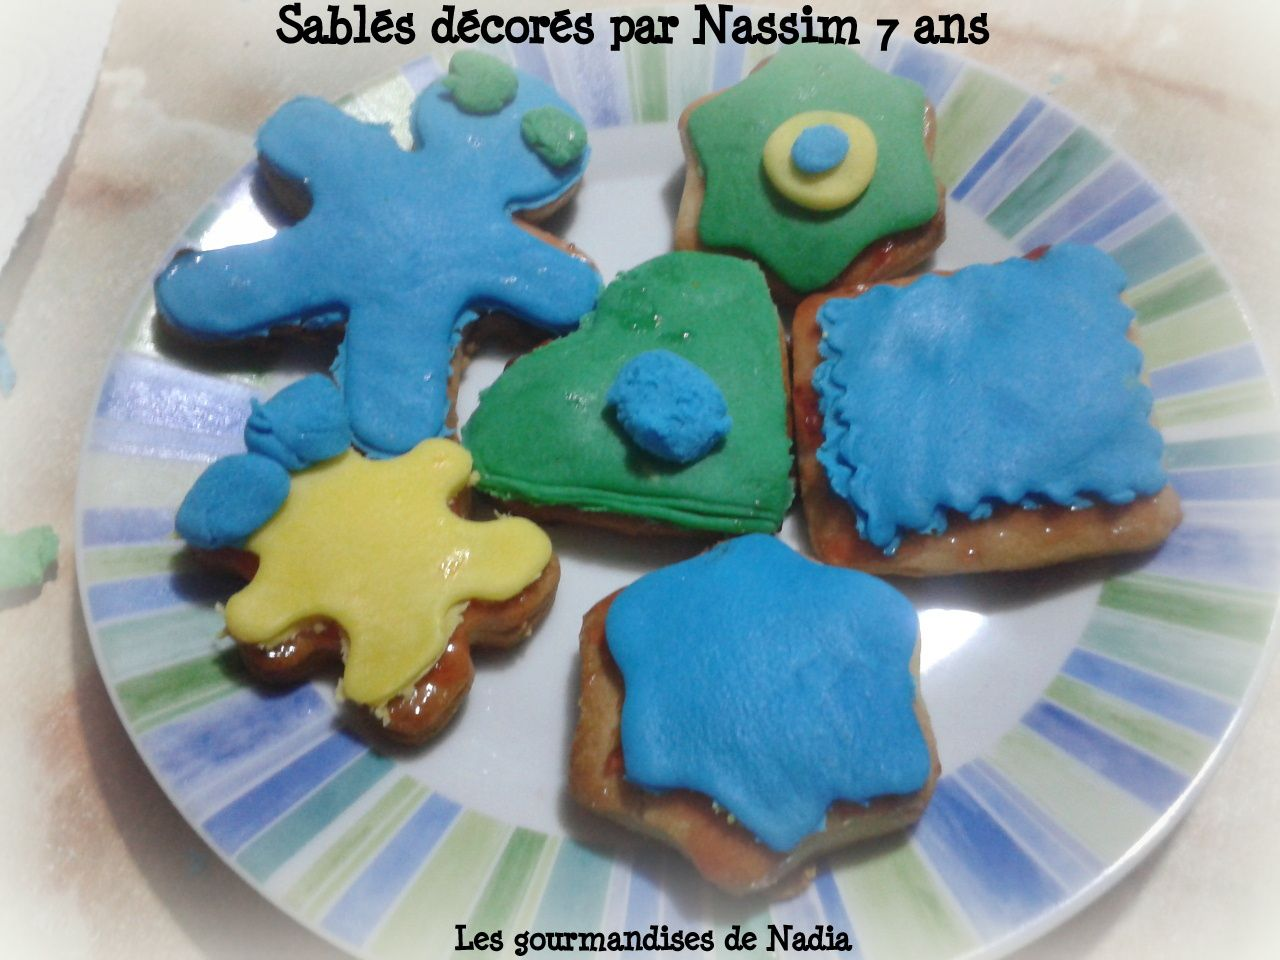 Sables Au Yaourt Decor Pate A Sucre Lesgourmandisesdenadia Over